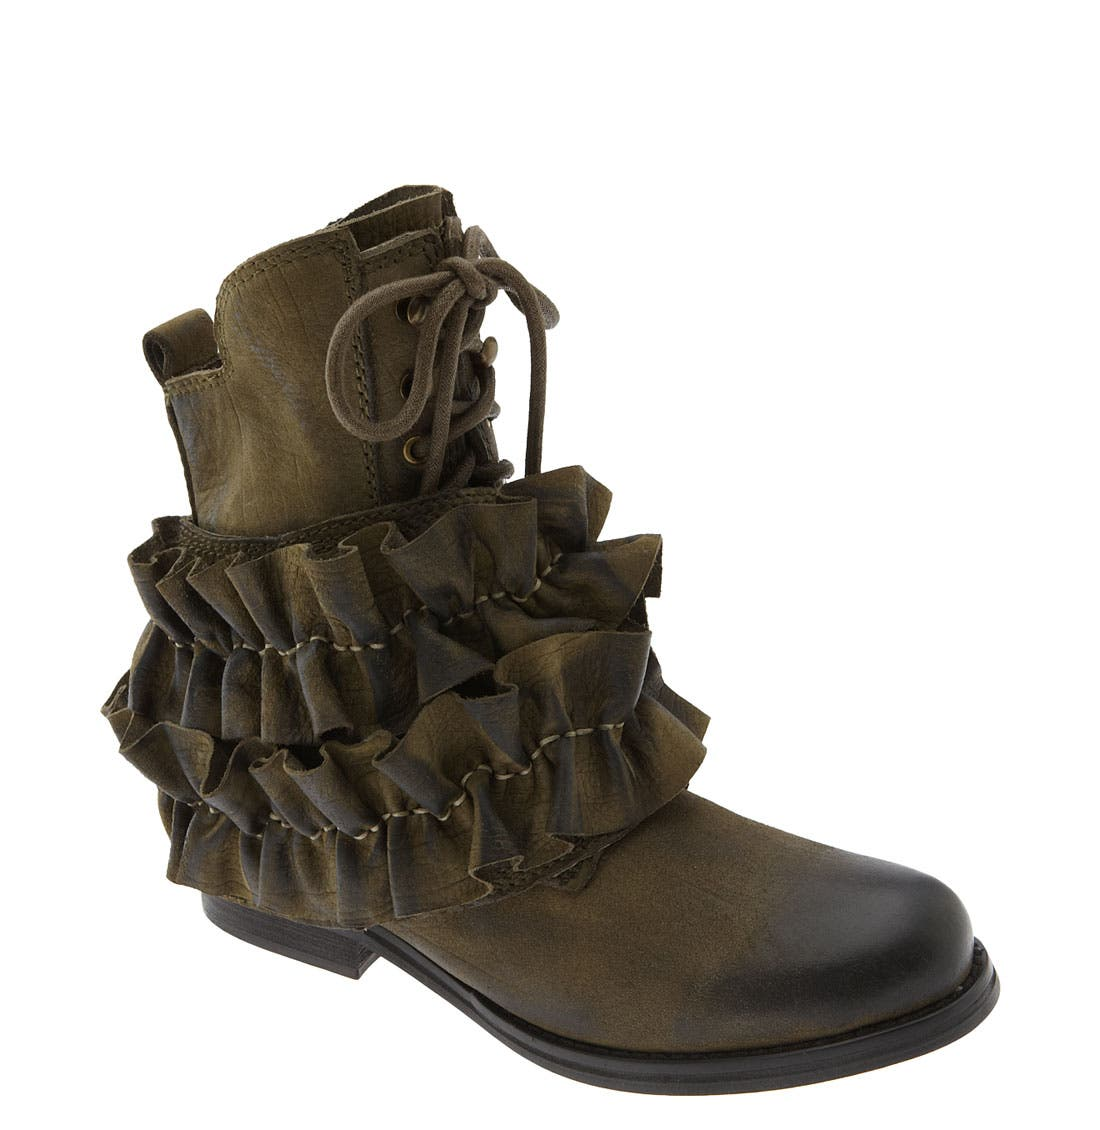 Alternate Image 1 Selected - Jeffrey Campbell 'All-Ruffle' Ankle Boot